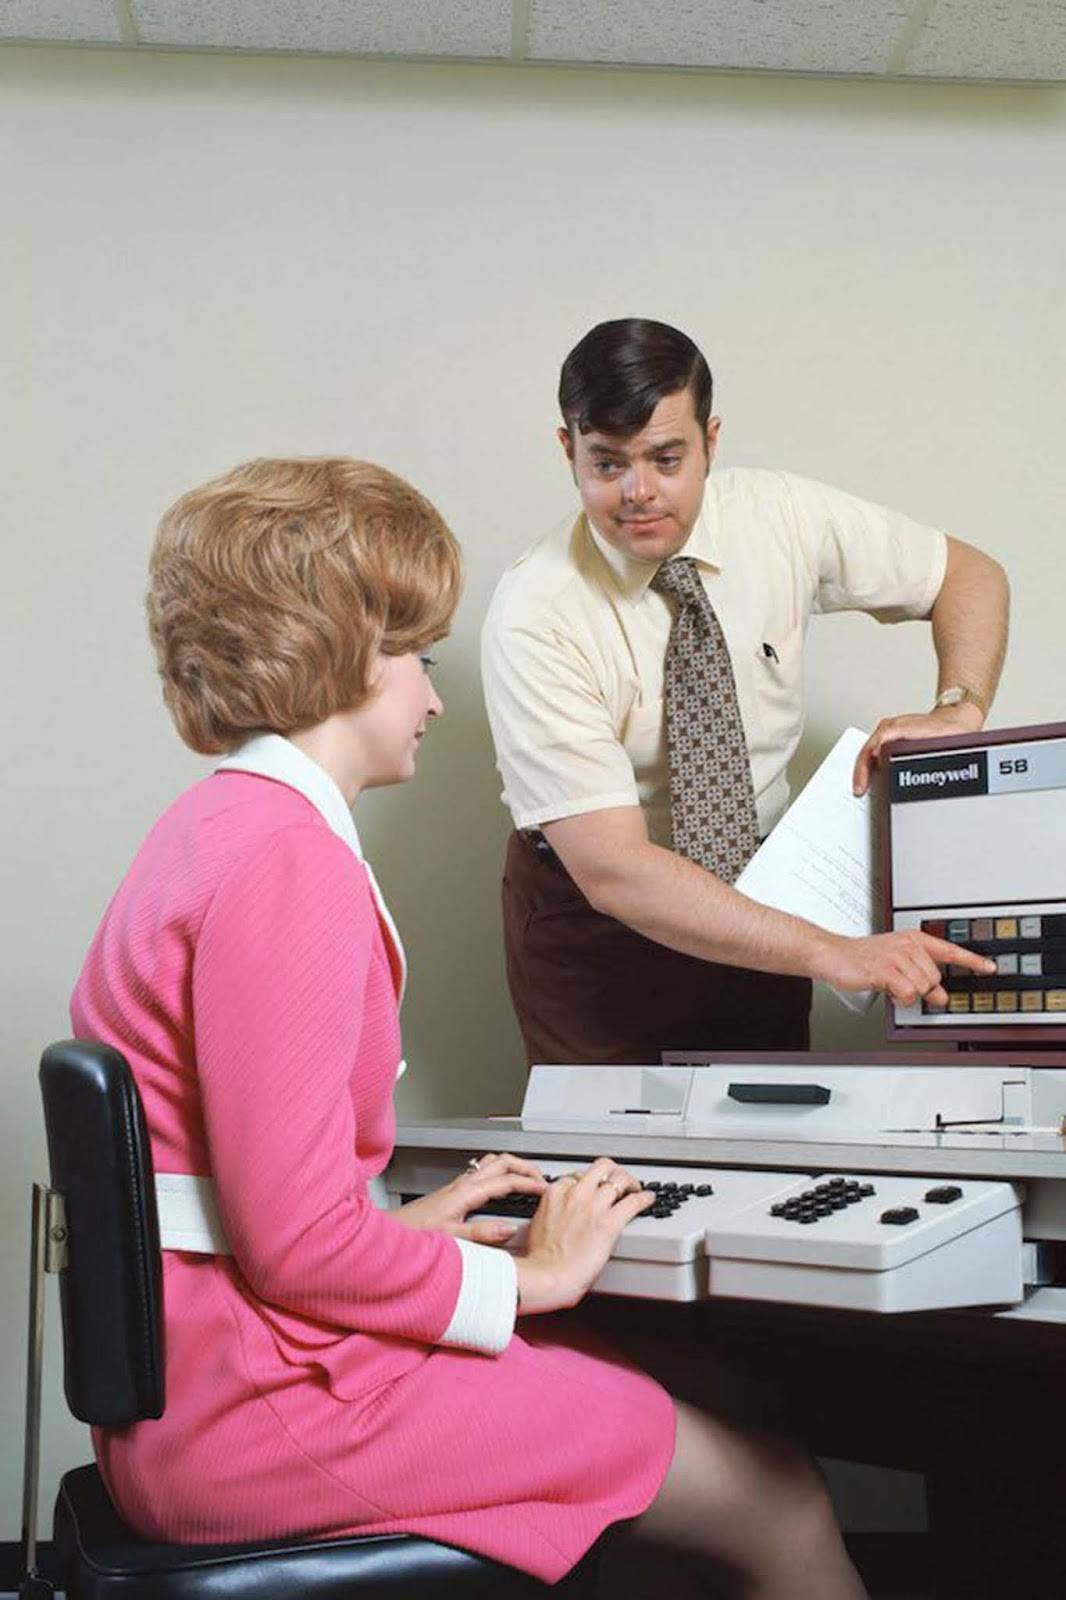 A woman using a data entry computer. She wears a bright pink skirt suit with white collar, cuffs and belt. The skirt is between thigh- and knee-length. Her hair is highly stylised, likely held in place with hairspray. 1970s.